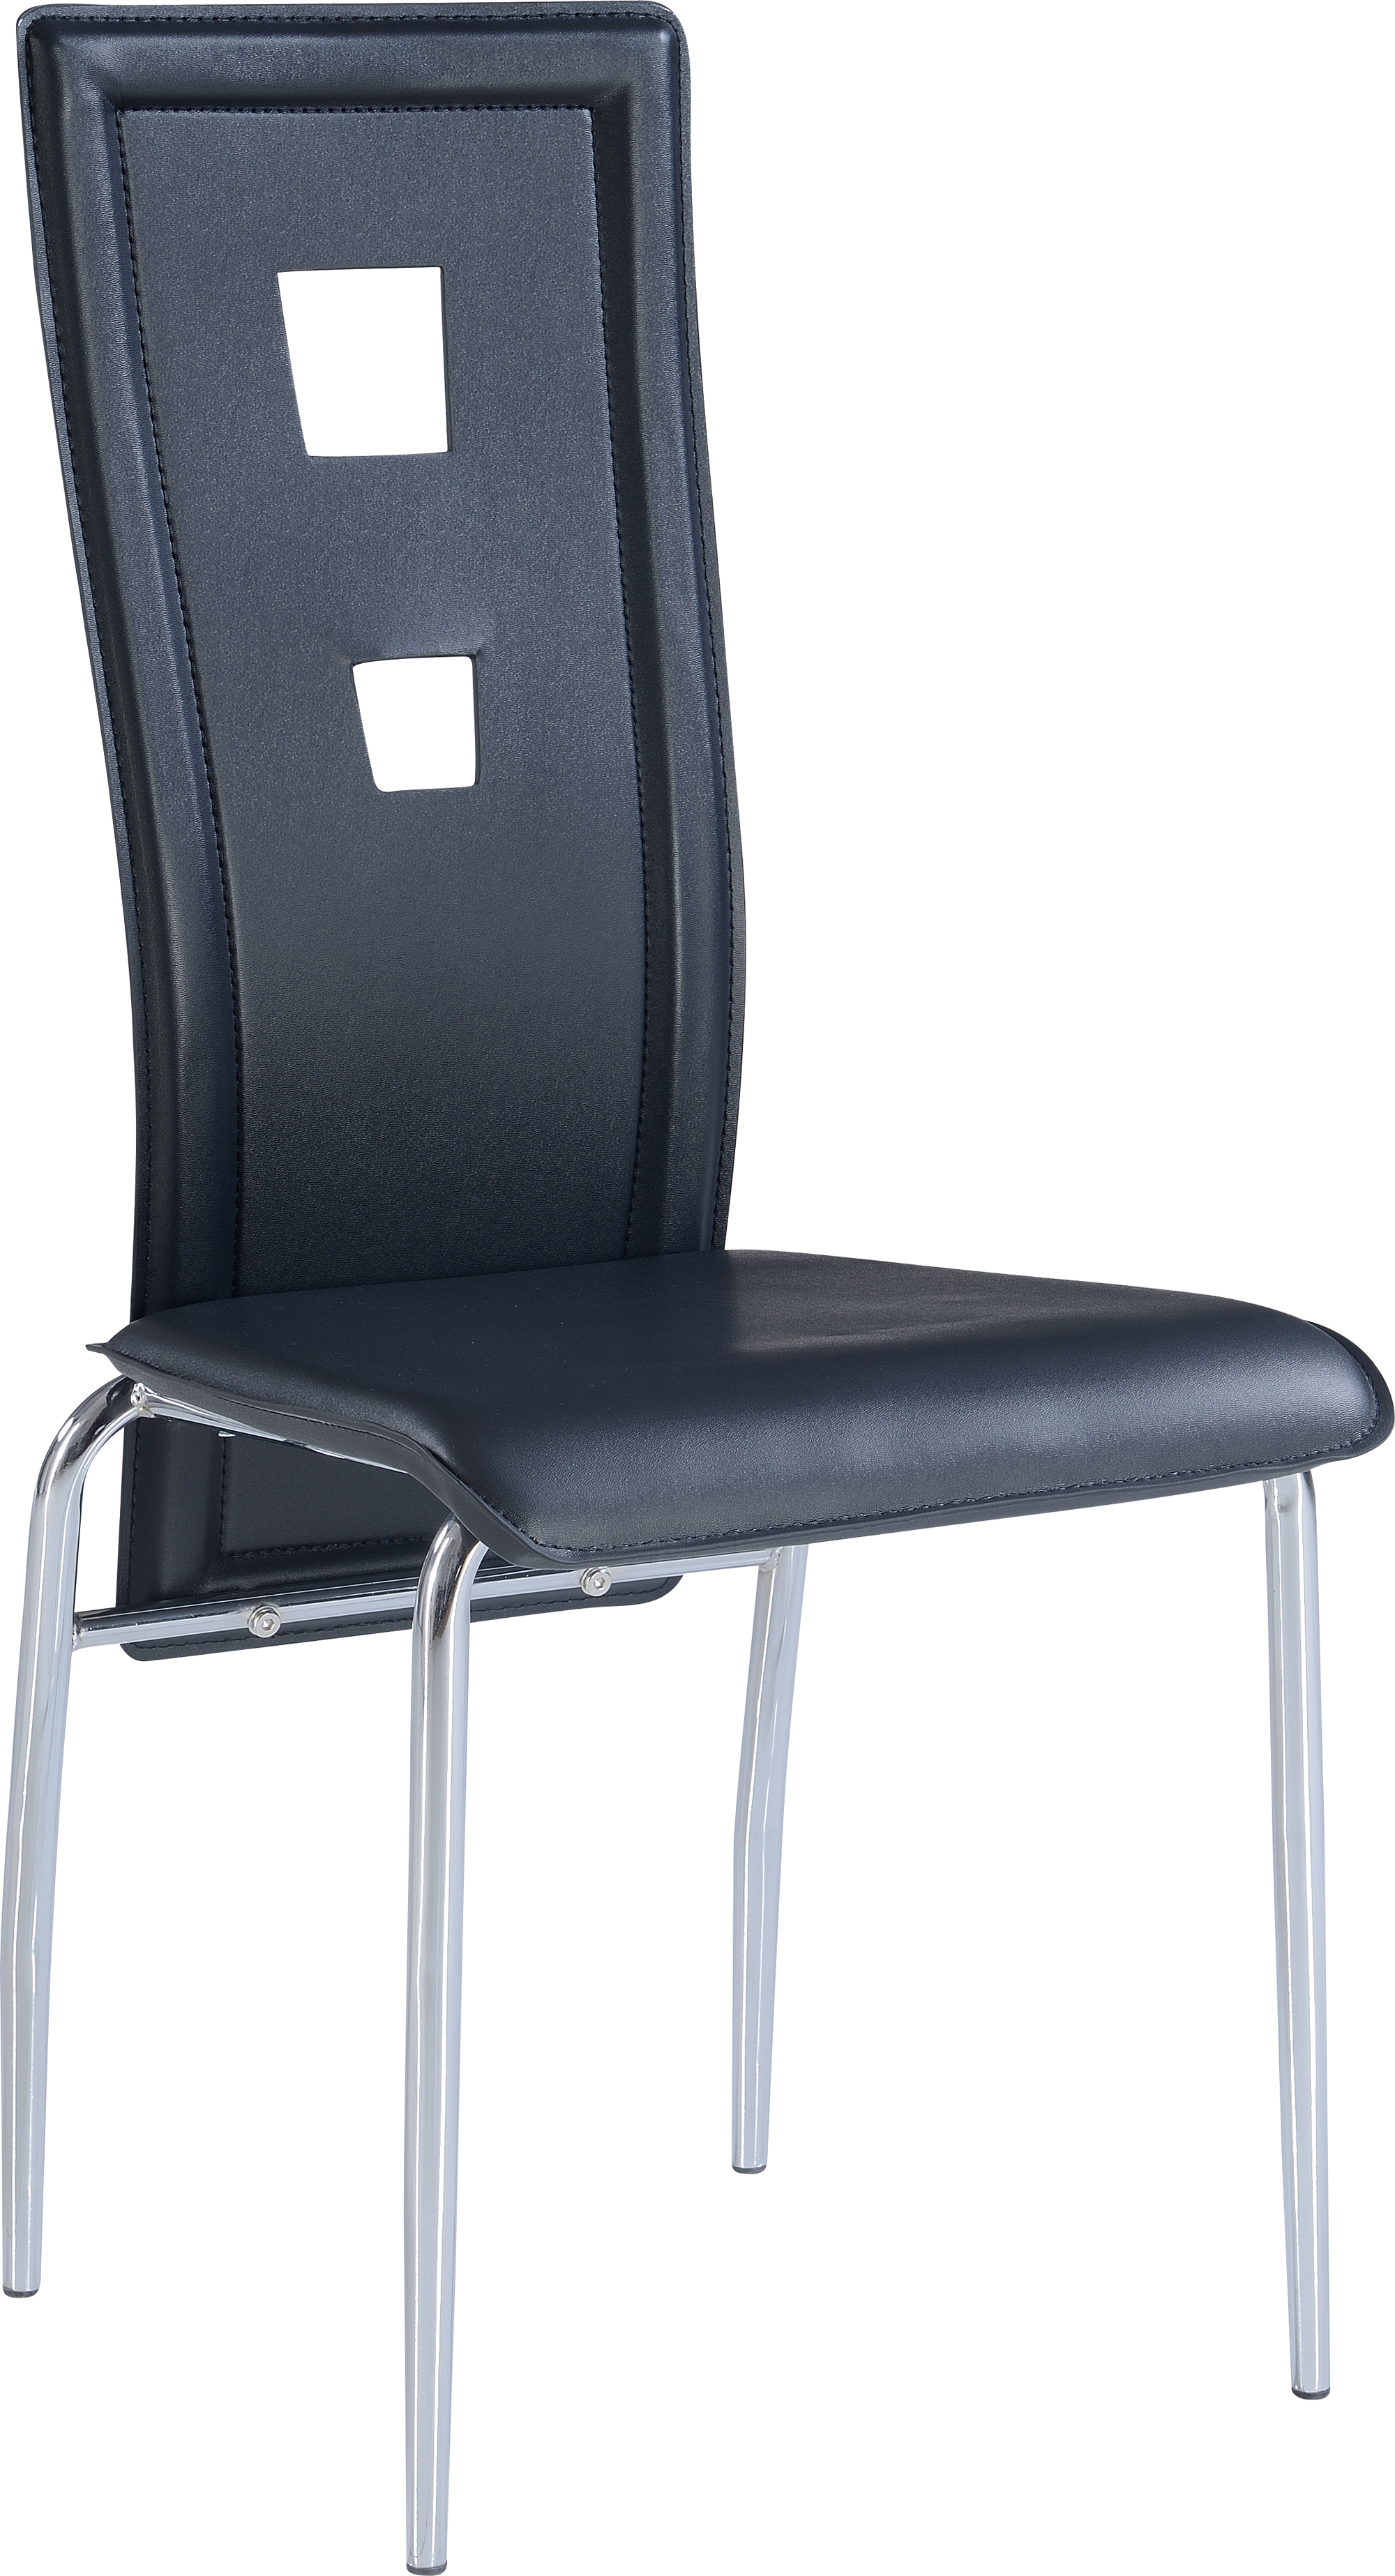 Dining Chair D1057DC Set of 2 Black by Global Furniture : D1057DC from futonland.com size 2000 x 3694 jpeg 2196kB